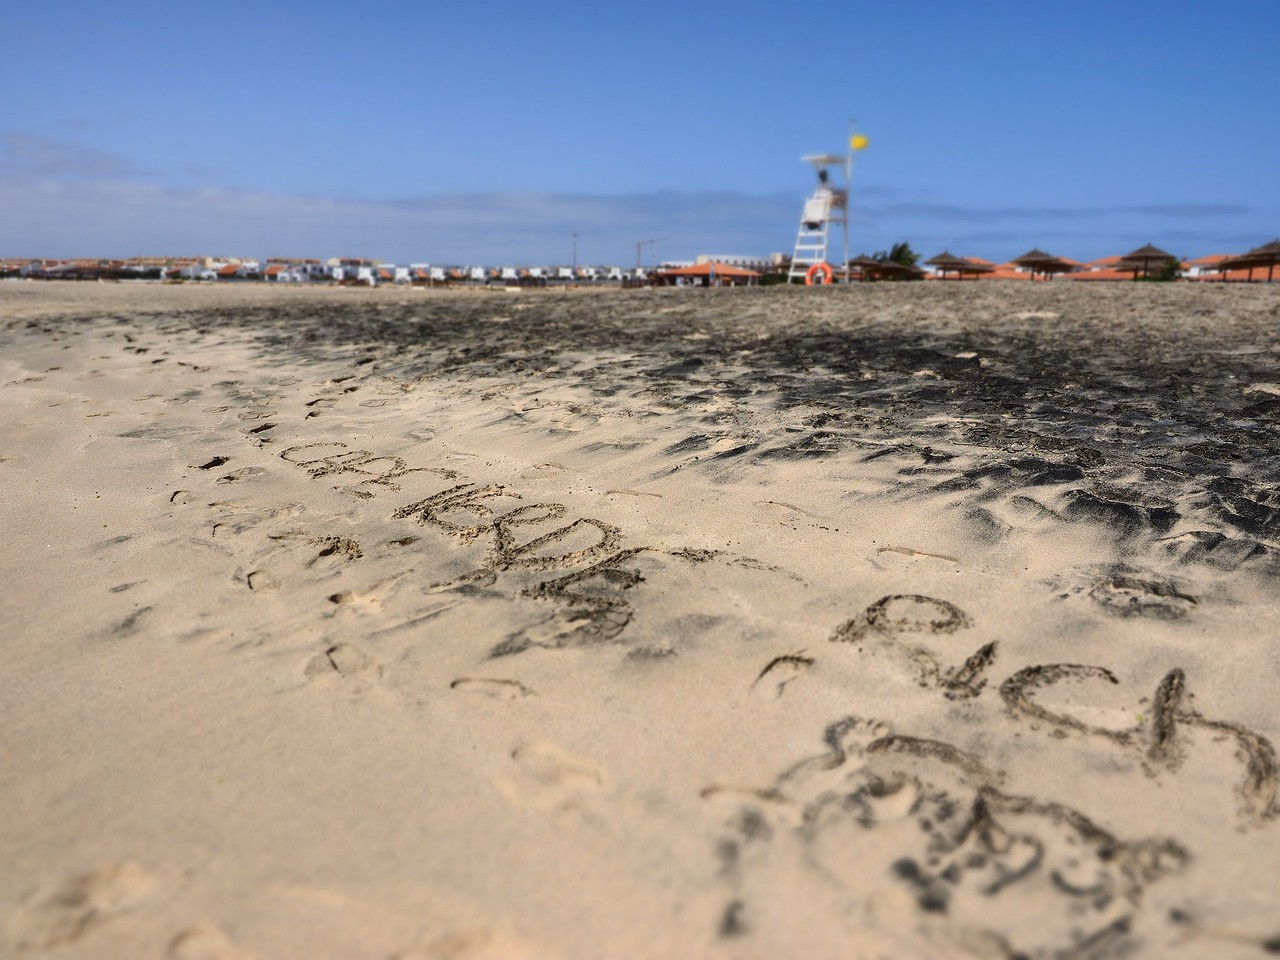 Cape Verde signature made on the beach. Thought it was quite amusing & worth a shot. Some are the guests certainly are :-)